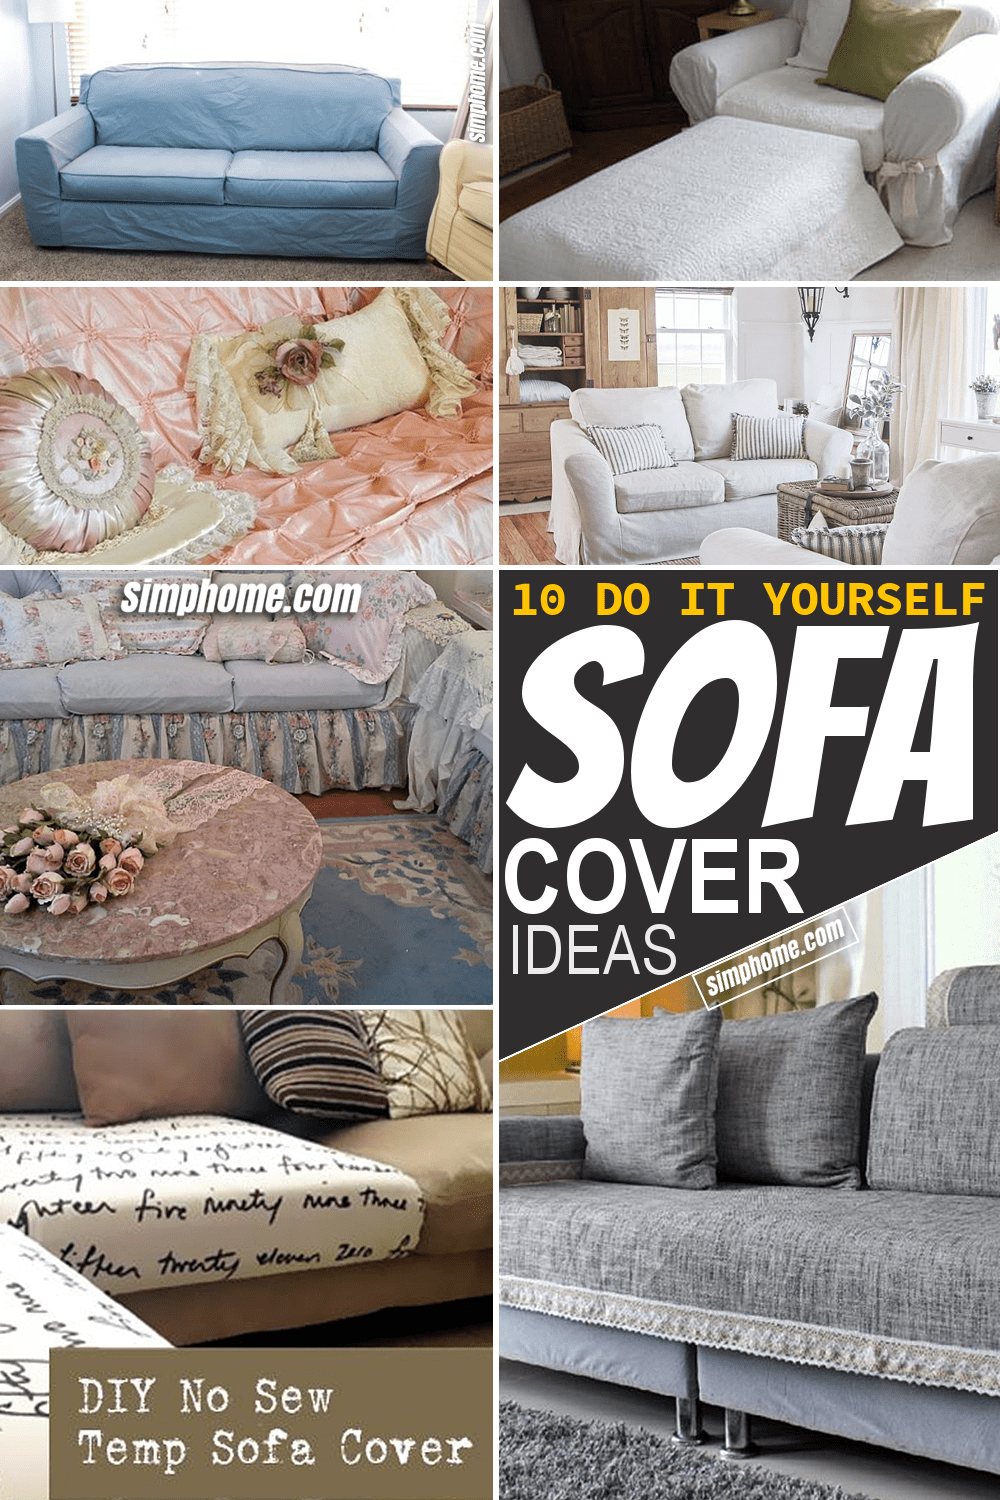 Simphome.com 10 DIY Sofa Cover ideas Featured Image Pinterest